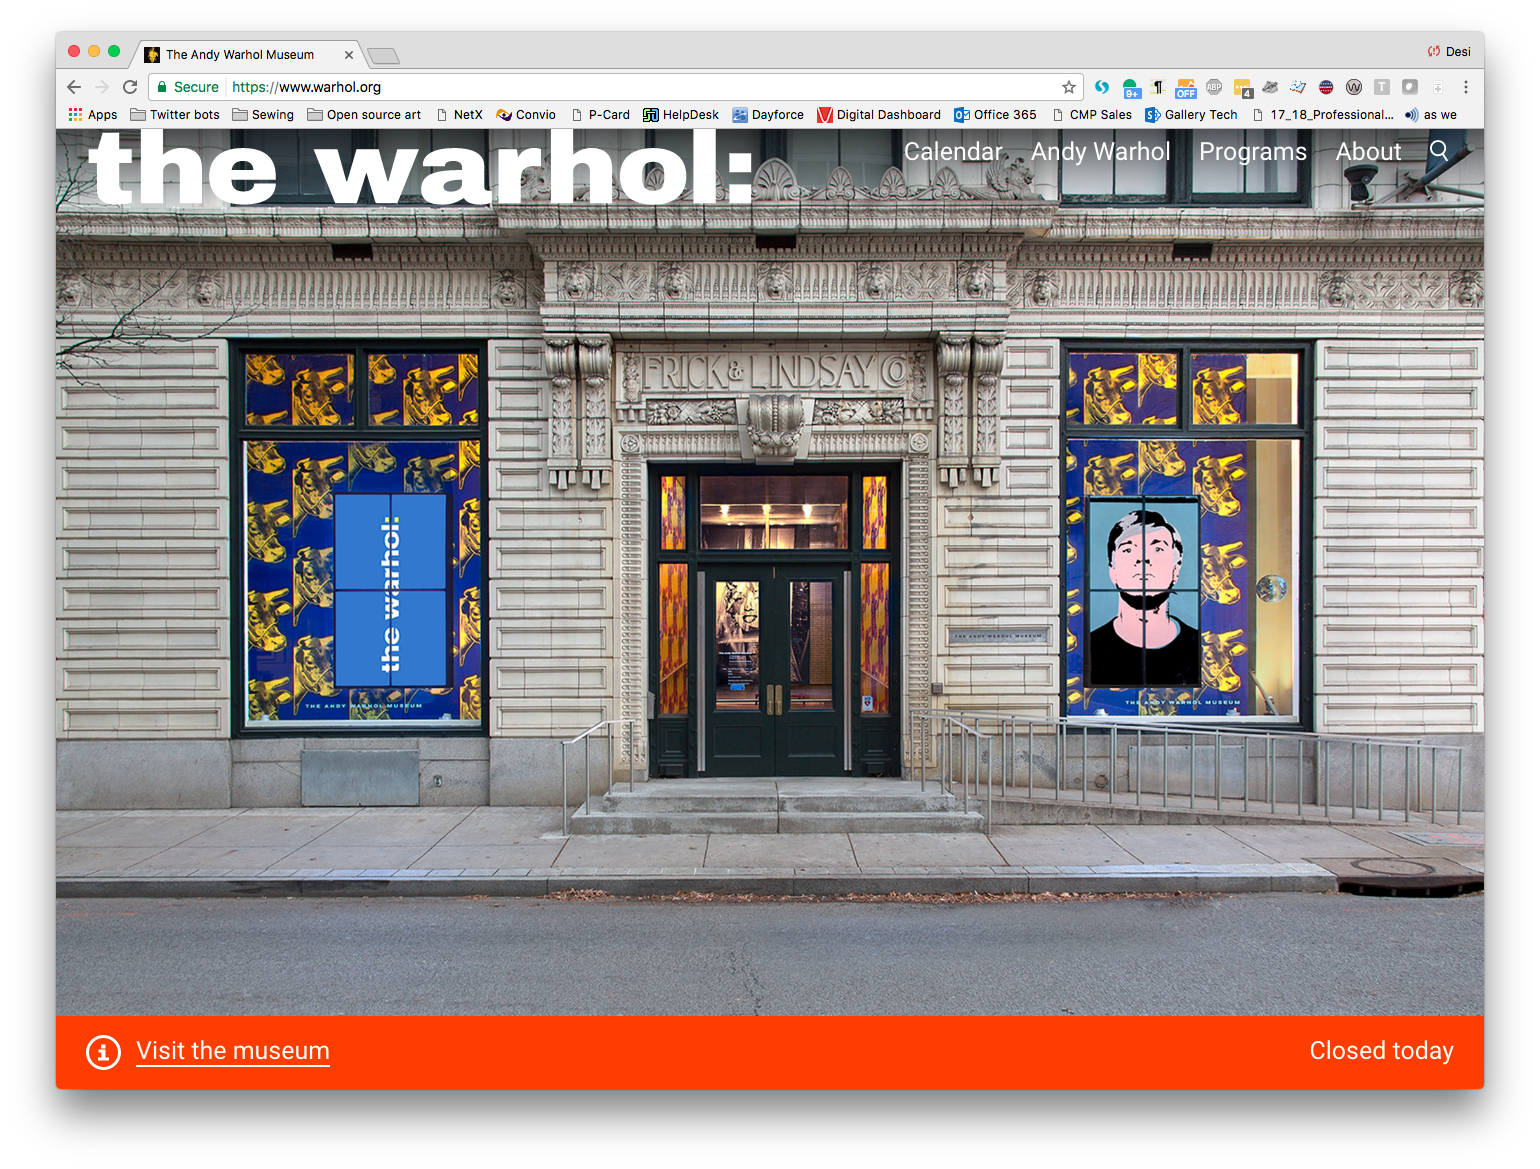 screen shot of the new warhol.org's homepage, which prominently features to the museum's facade.